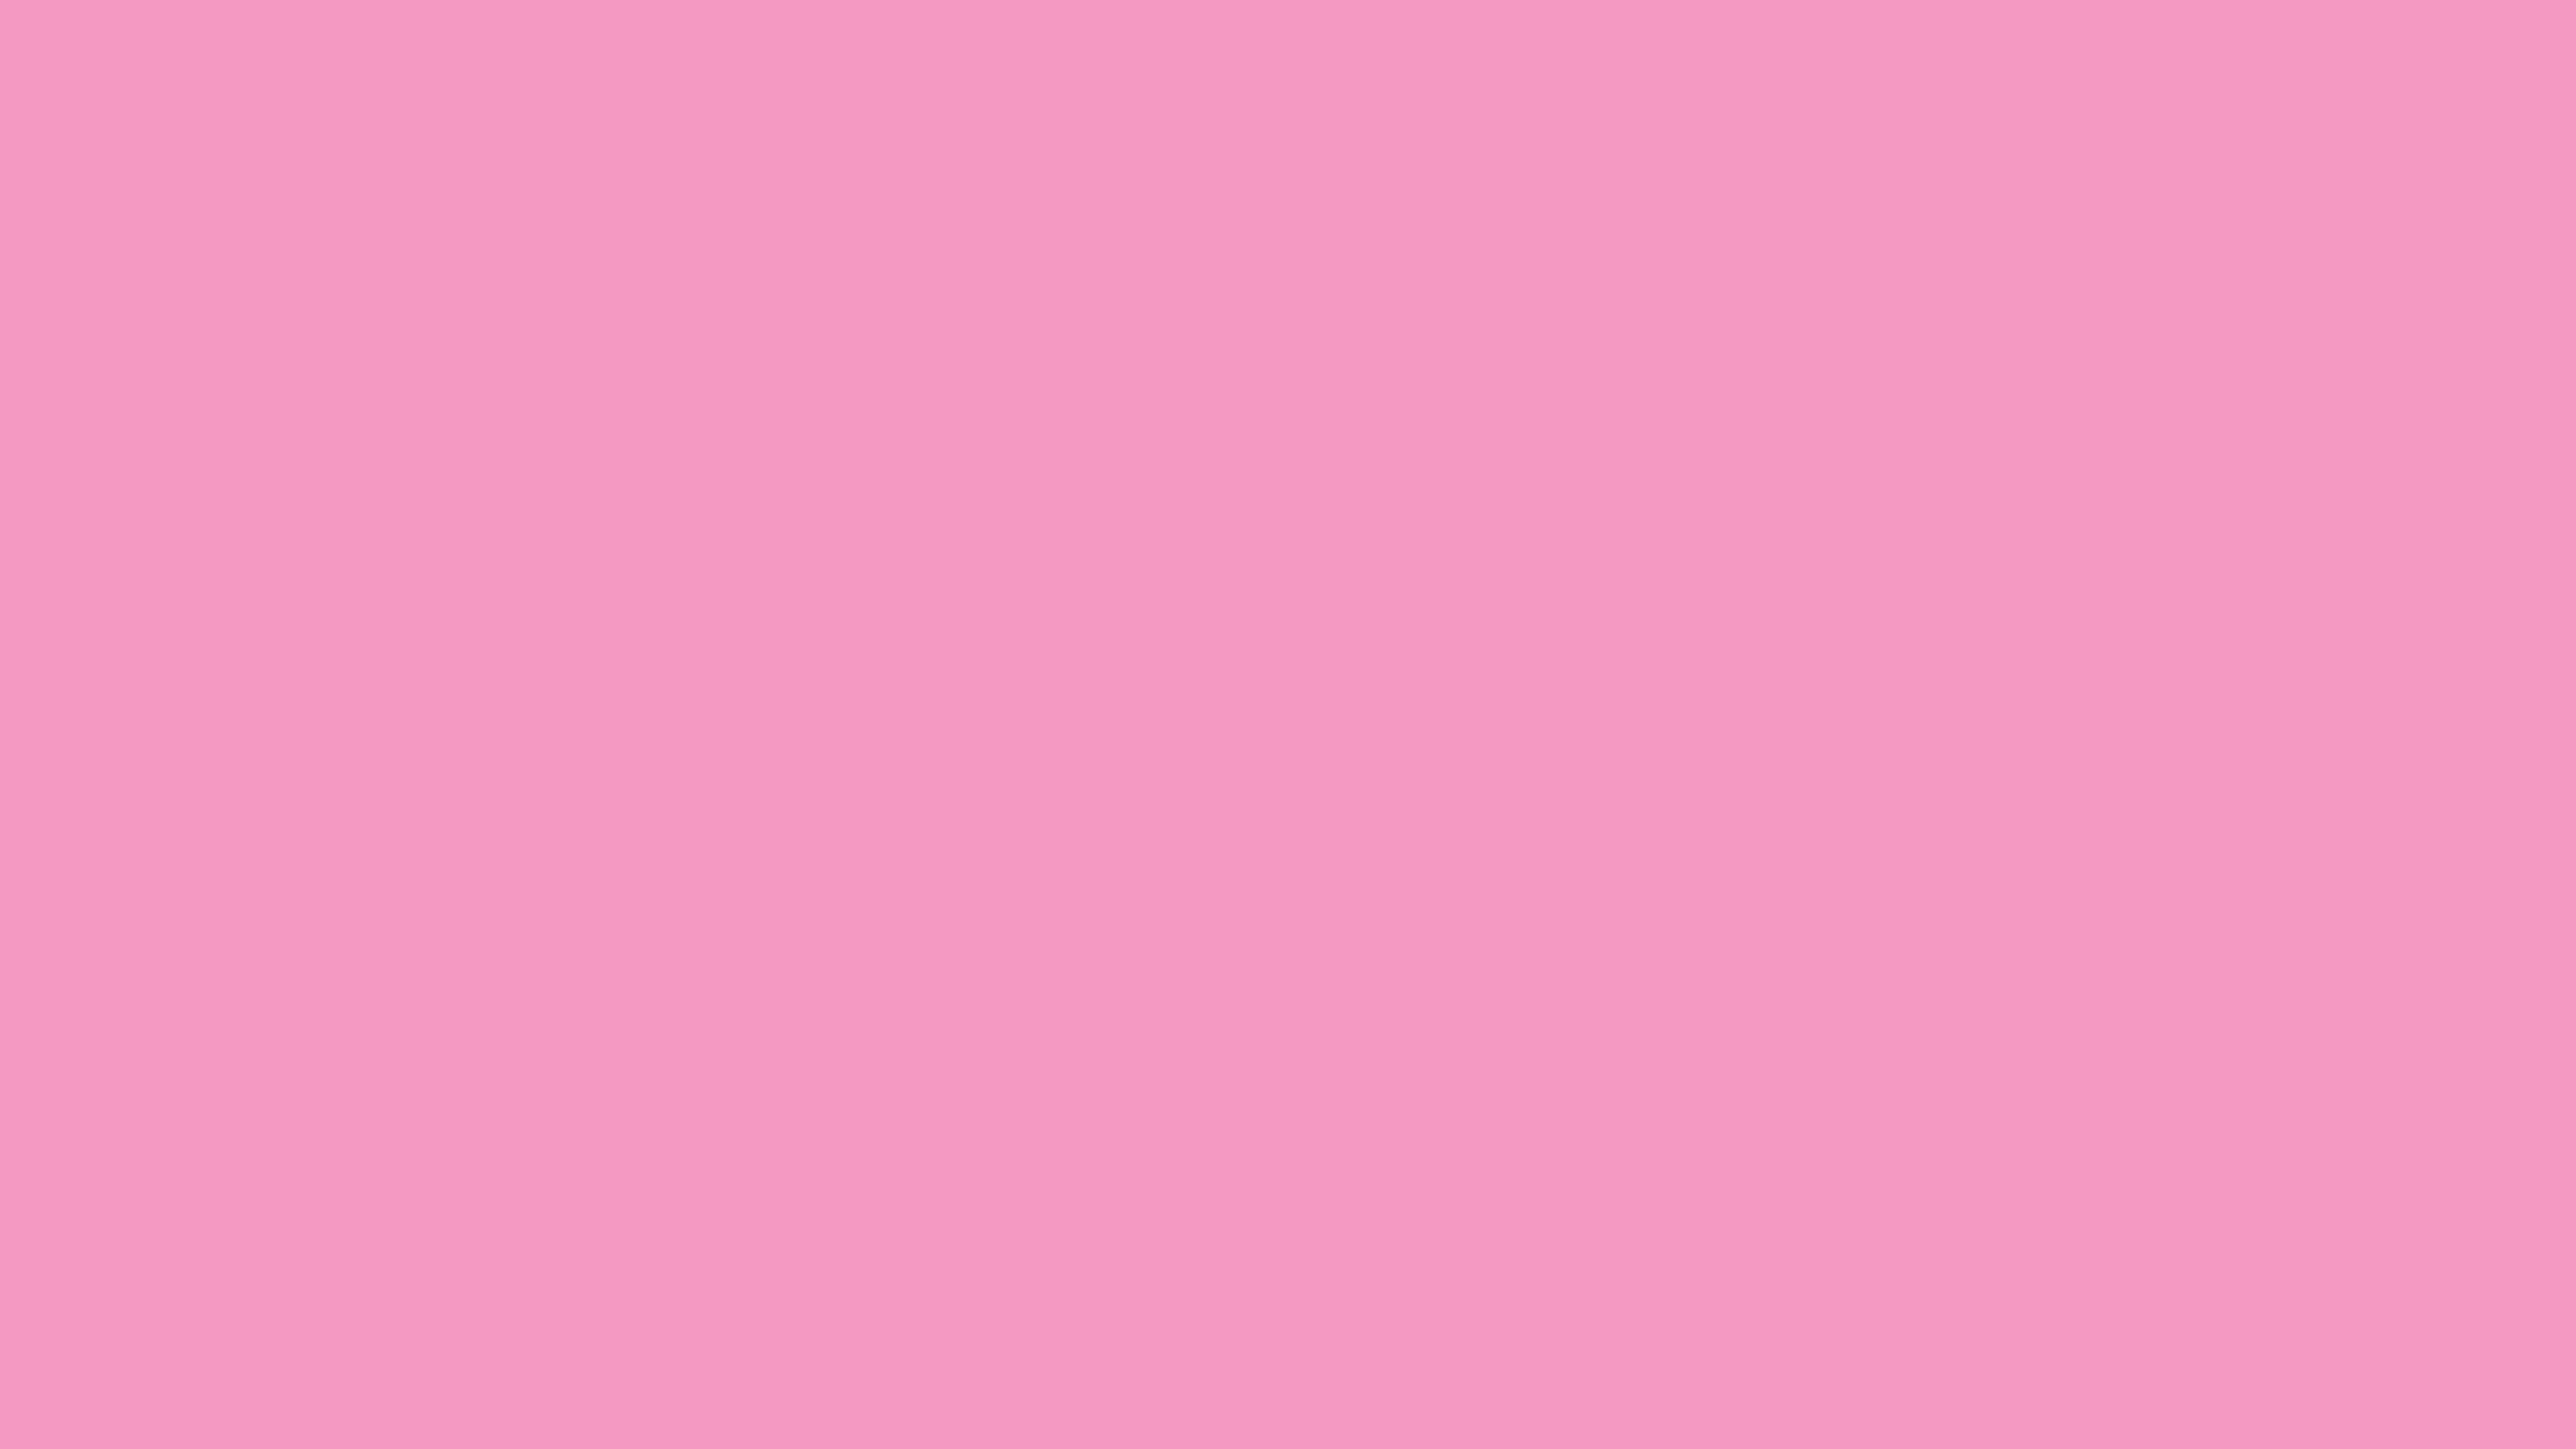 3840x2160 Pastel Magenta Solid Color Background